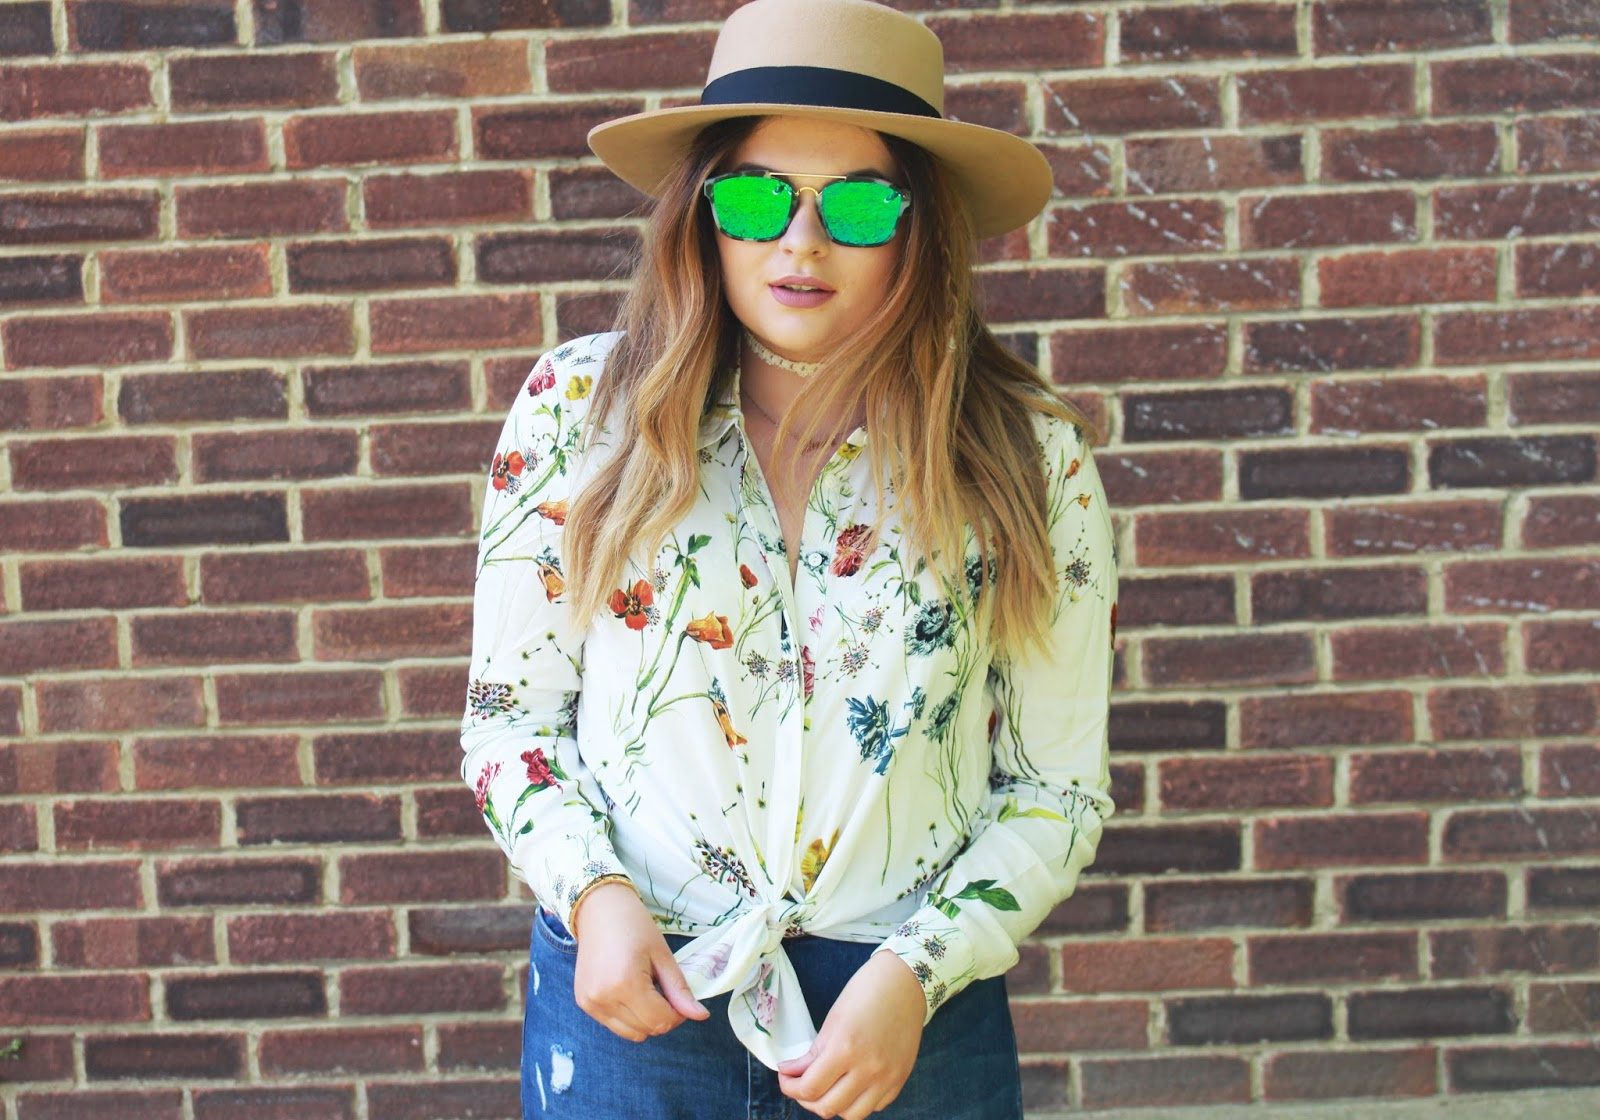 summer body confidence, the confident way to step into summer, summer outfit ideas, spring outfit ideas, summer ootd 2016, warehouse floral shirt, misguided ripped jeans, cheap reflective sunglasses, chocker style 2016, cool ways to wear birkenstocks